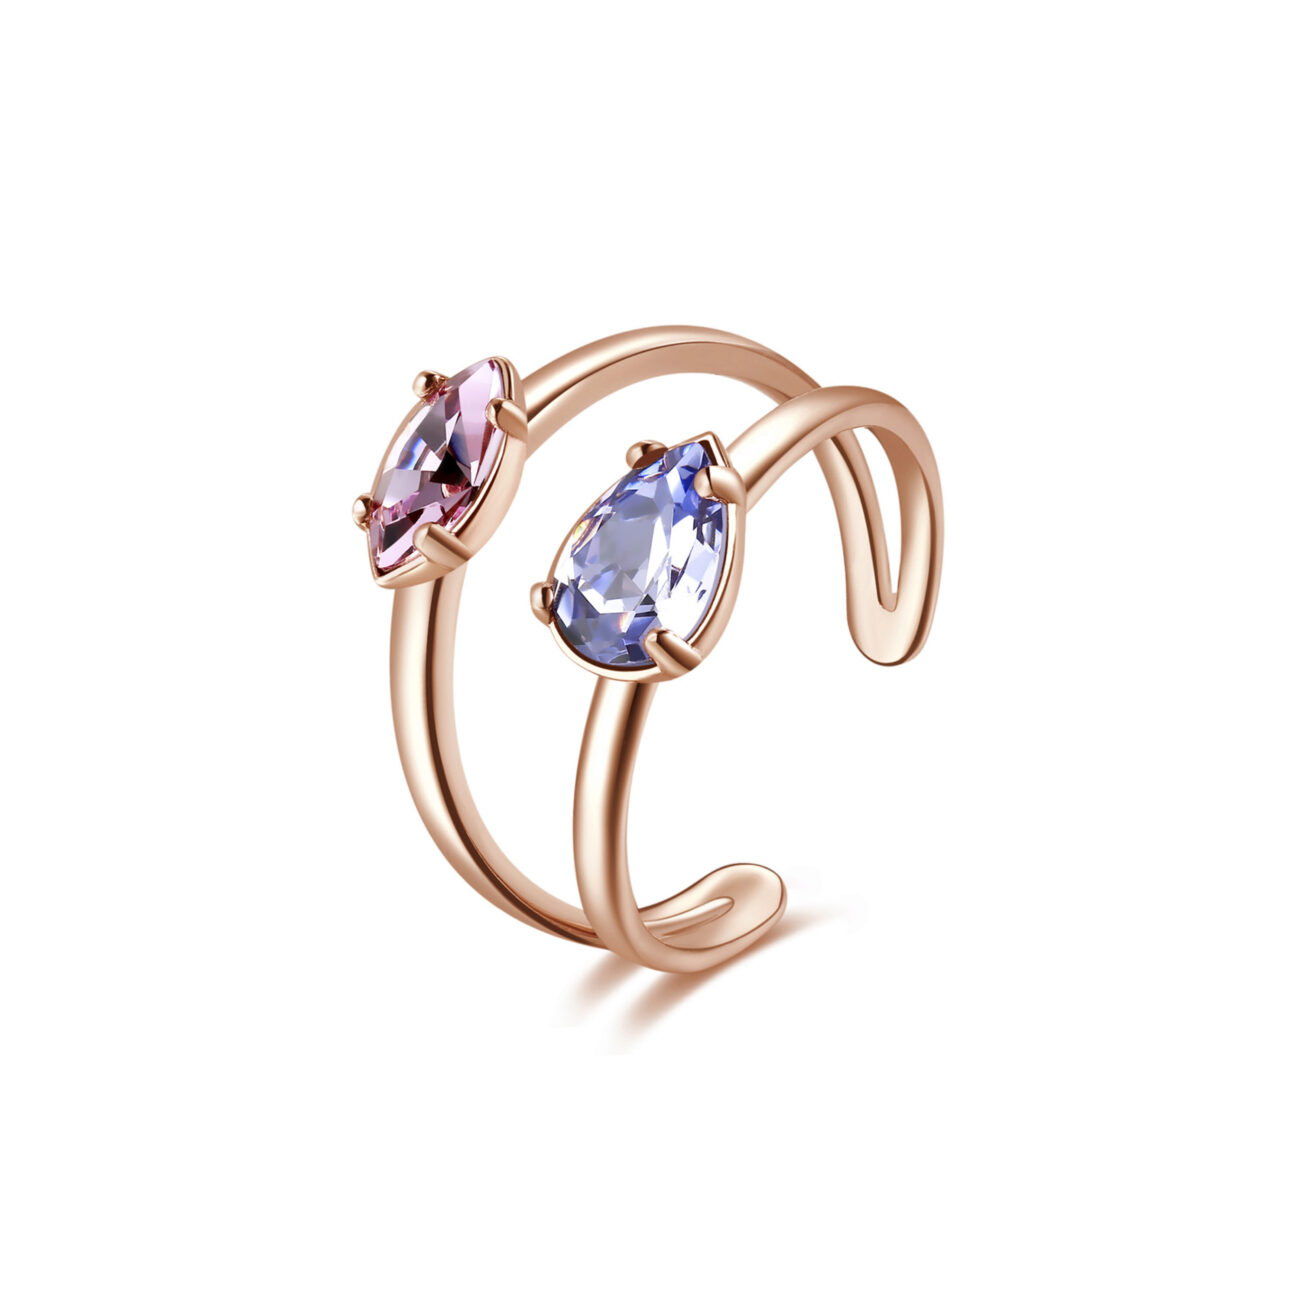 Rhodiated brass ring and rose gold galvanic with provence lavender and light amethyst Swarovski©crystals.